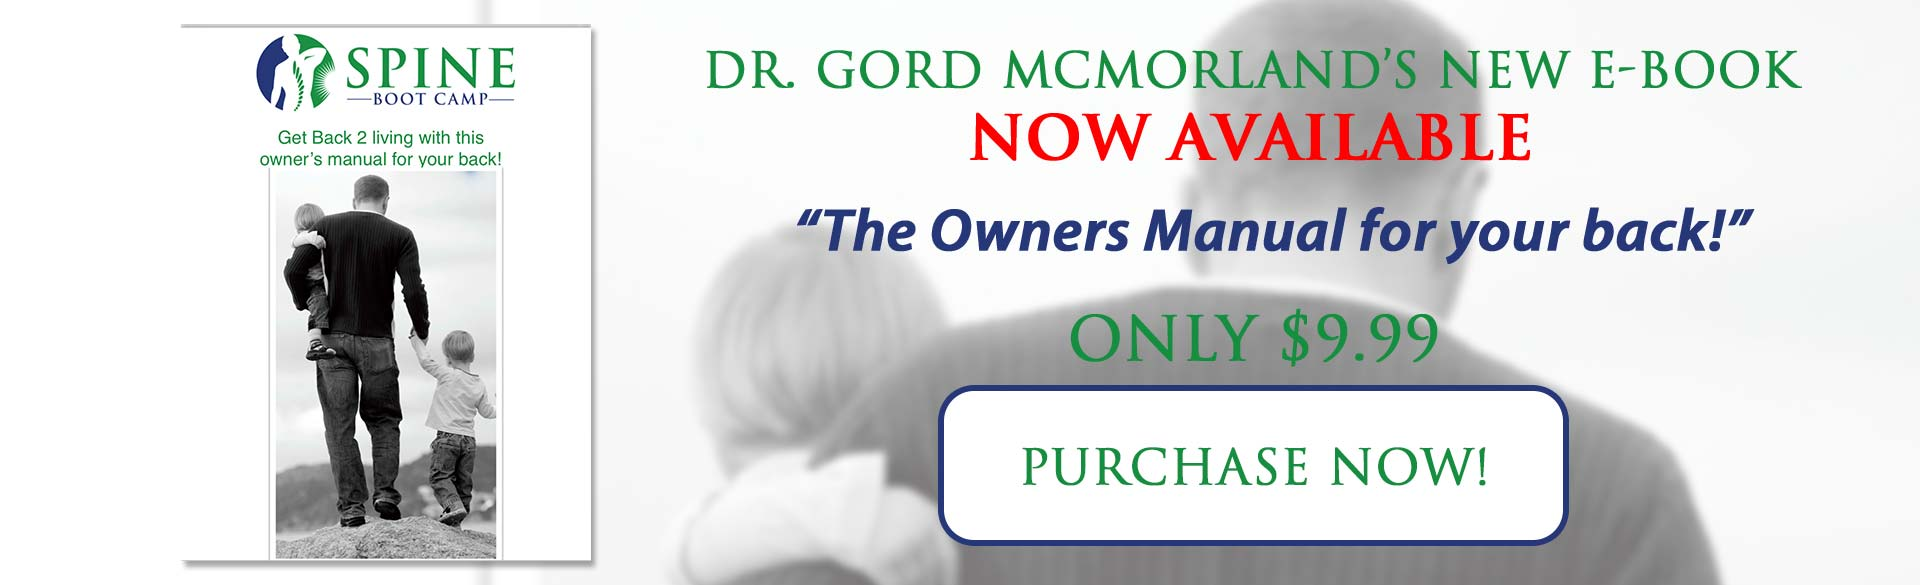 Dr. Gord McMorland E-book Banner